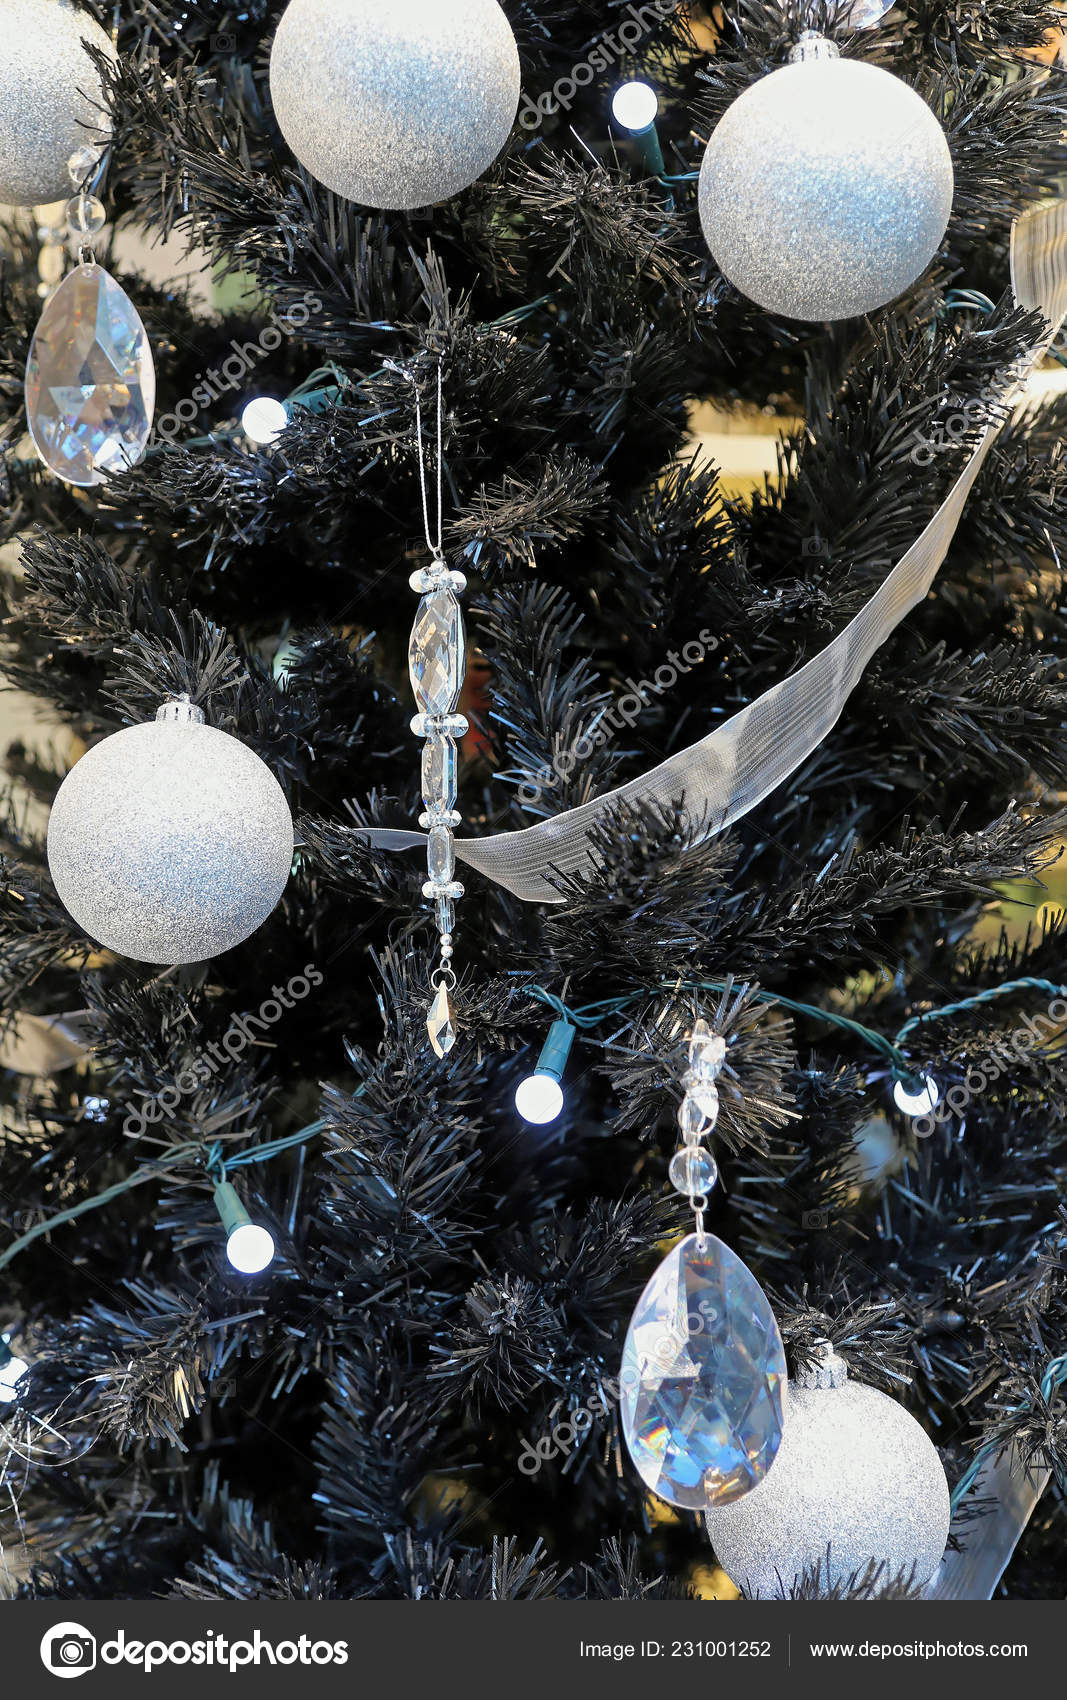 Black Christmas Tree Silver Baubles Crystal Ornaments Stock Photo Image By C Baloncici 231001252